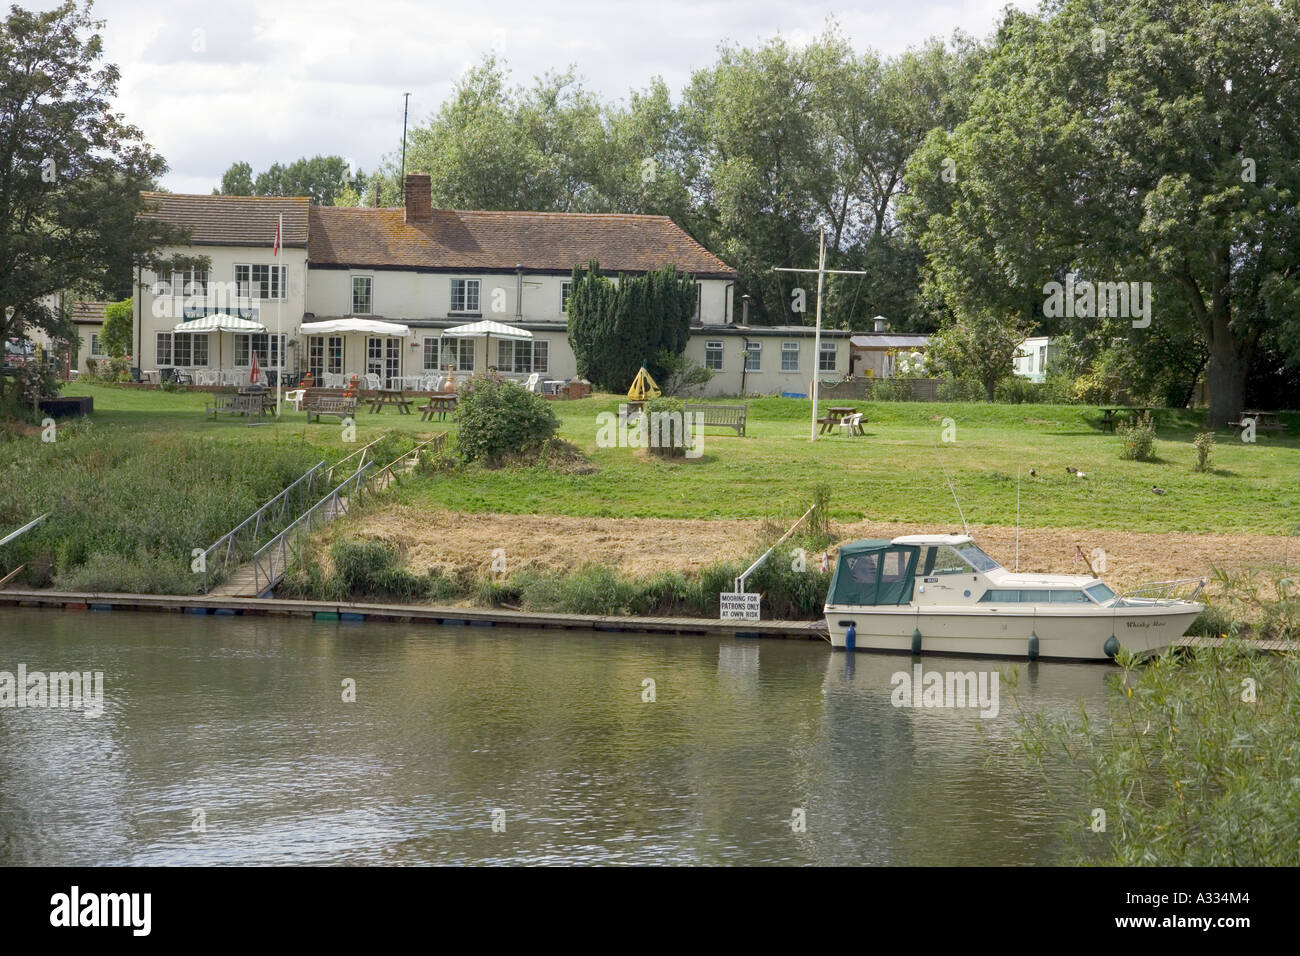 The Old Ferry Inn beside the River Severn at Chaceley, Gloucestershire - Stock Image